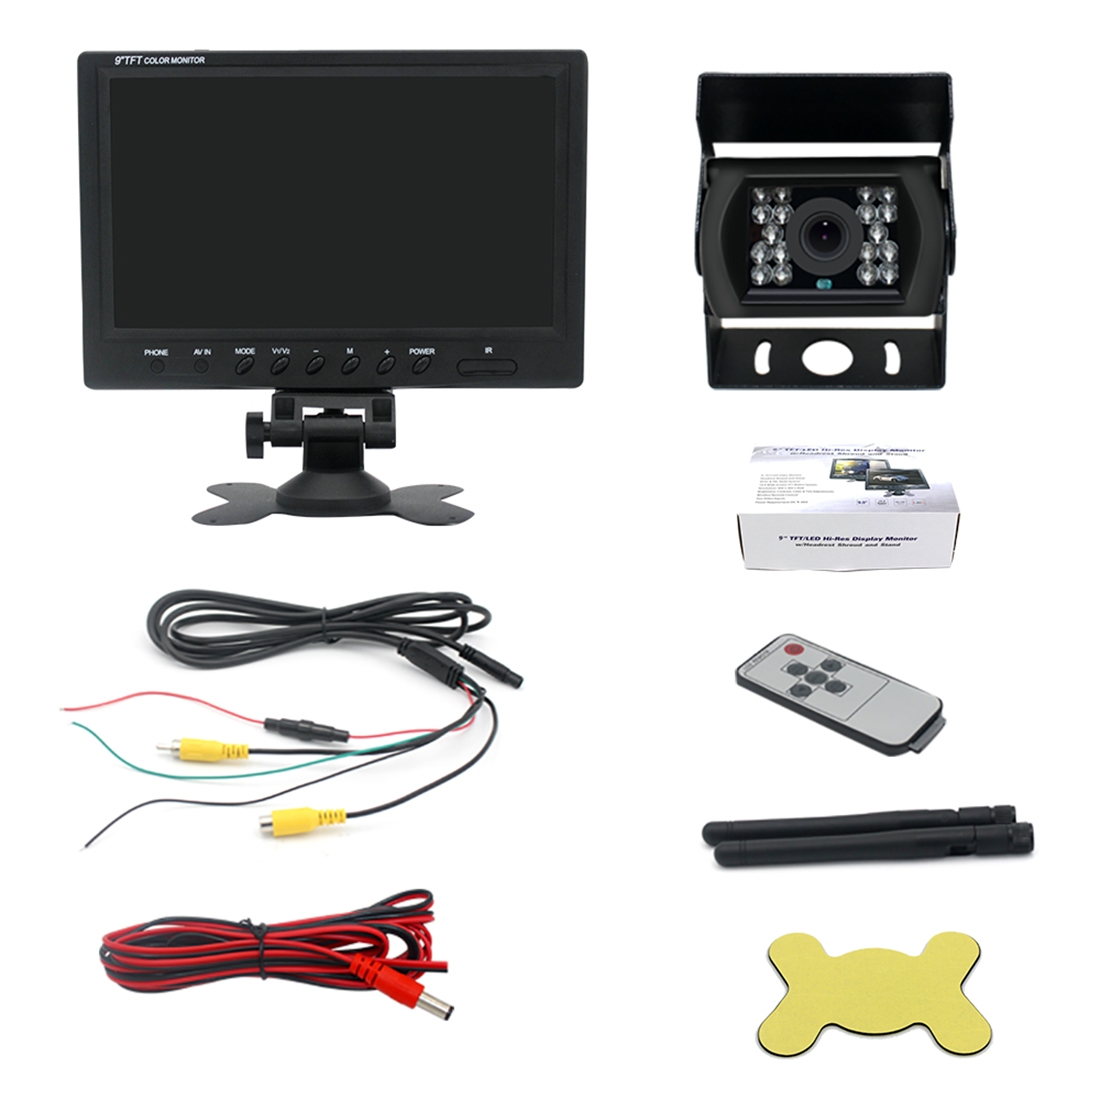 PZ-610-W 9 inch Wireless Single Cameras Rear View Camera Infrared Night Vision Rear View Parking Reversing System